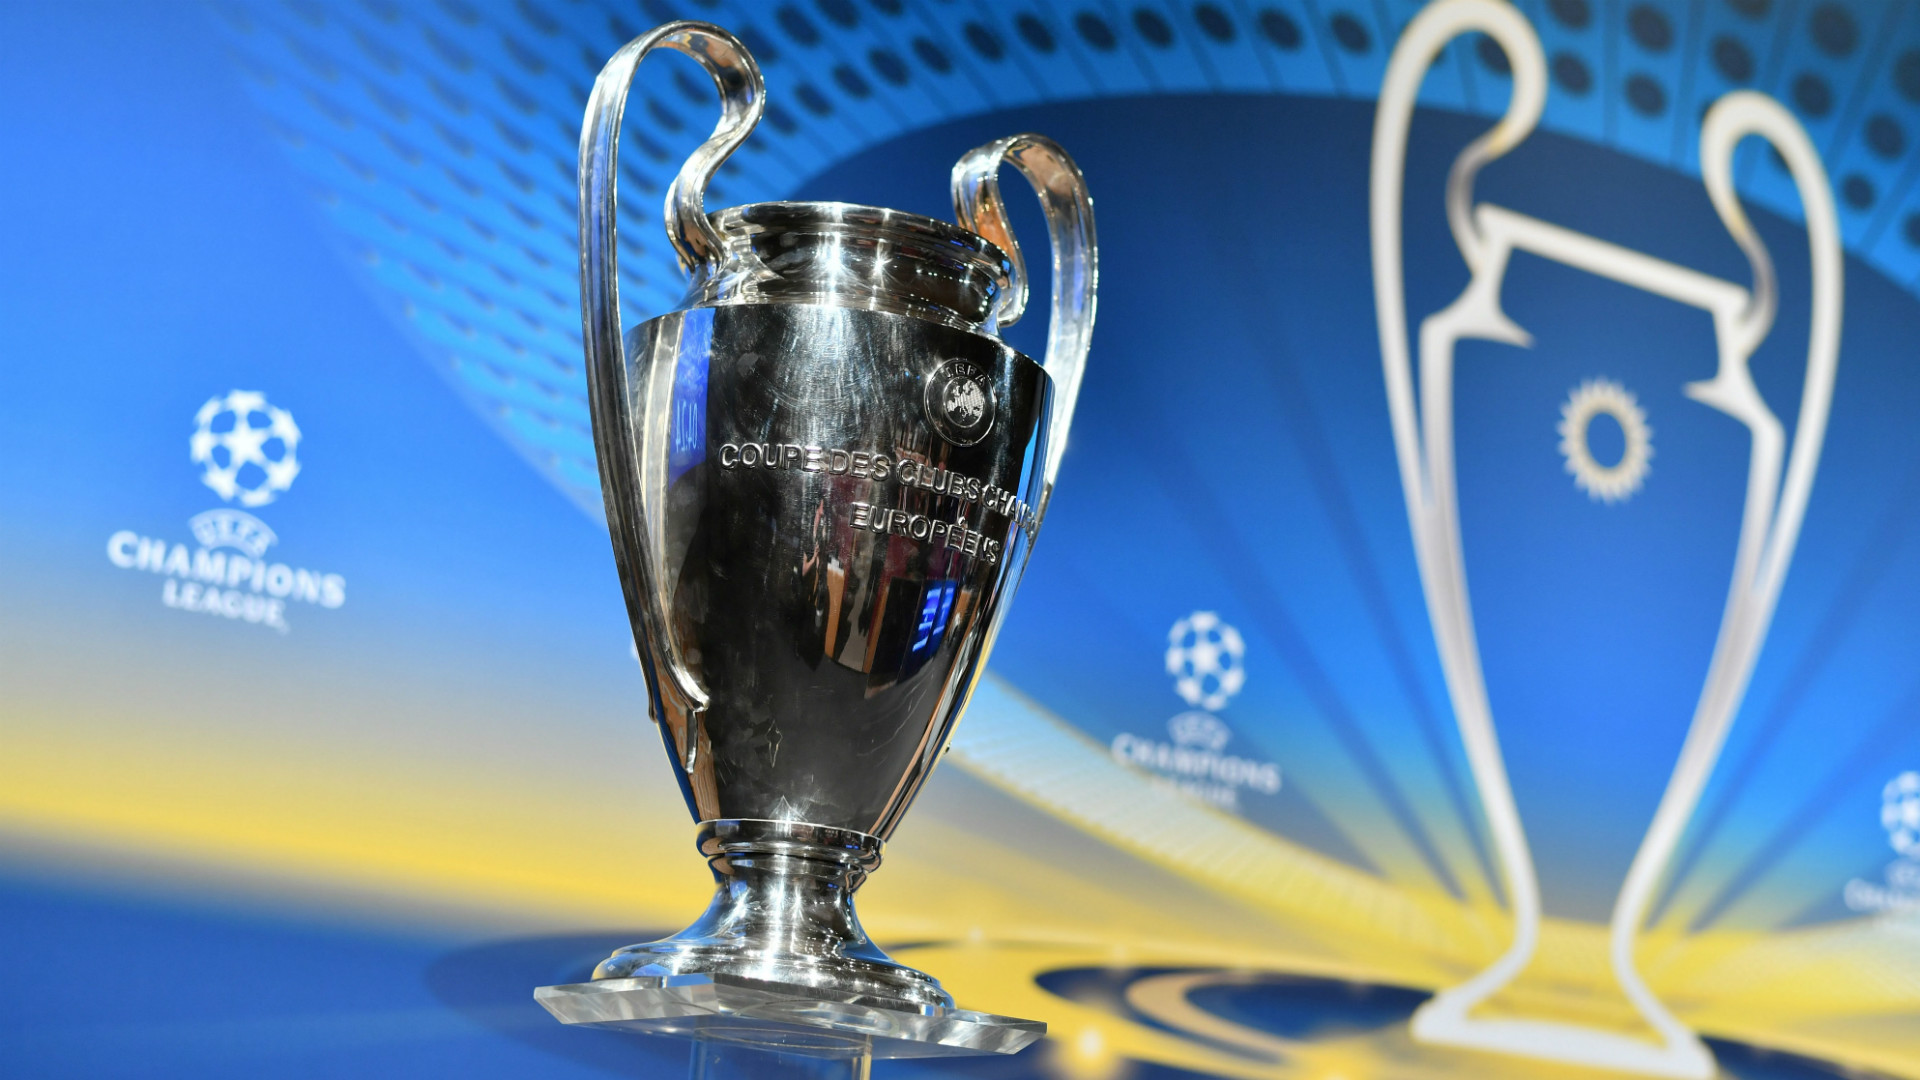 The history of Champions League winners | Sporting News